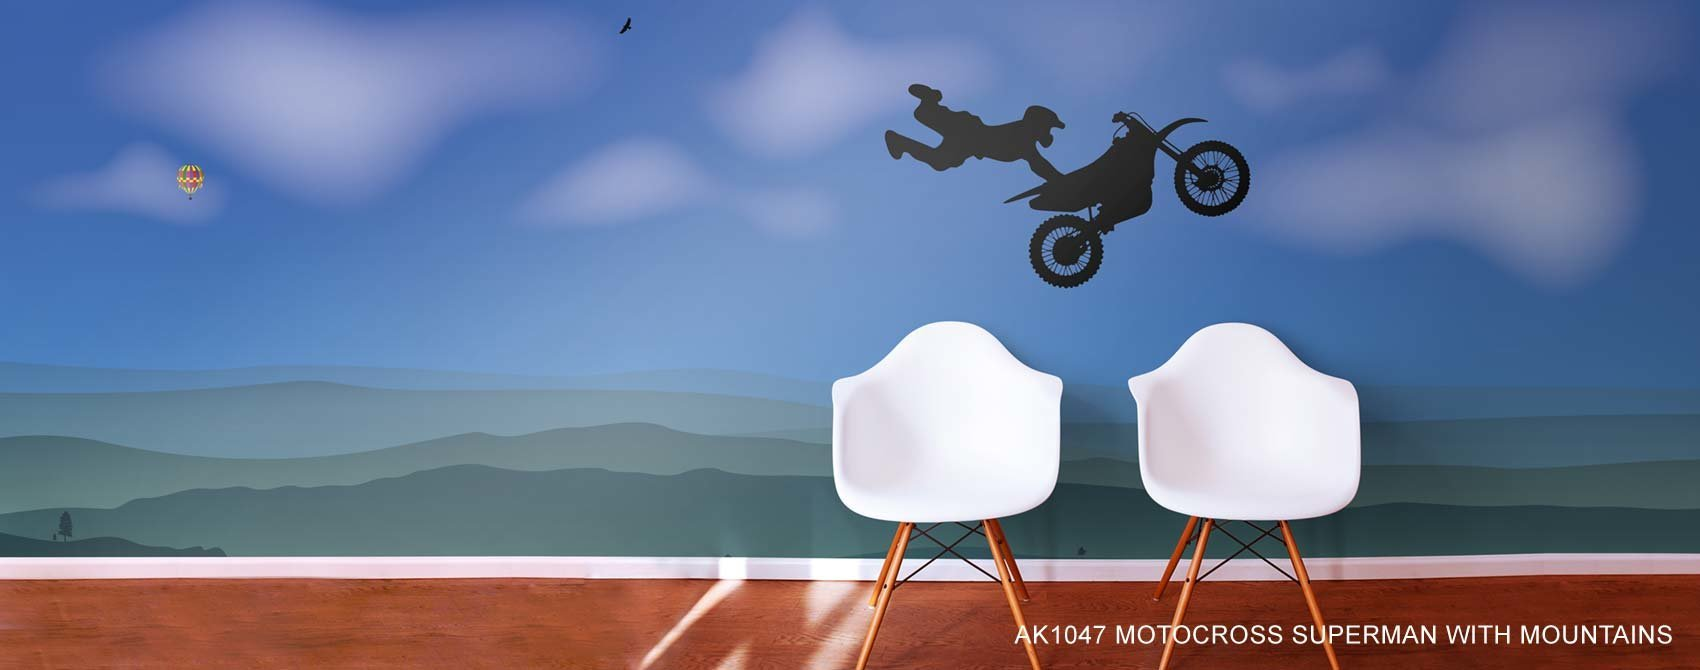 motorcross superman with mountains wallpaper mural